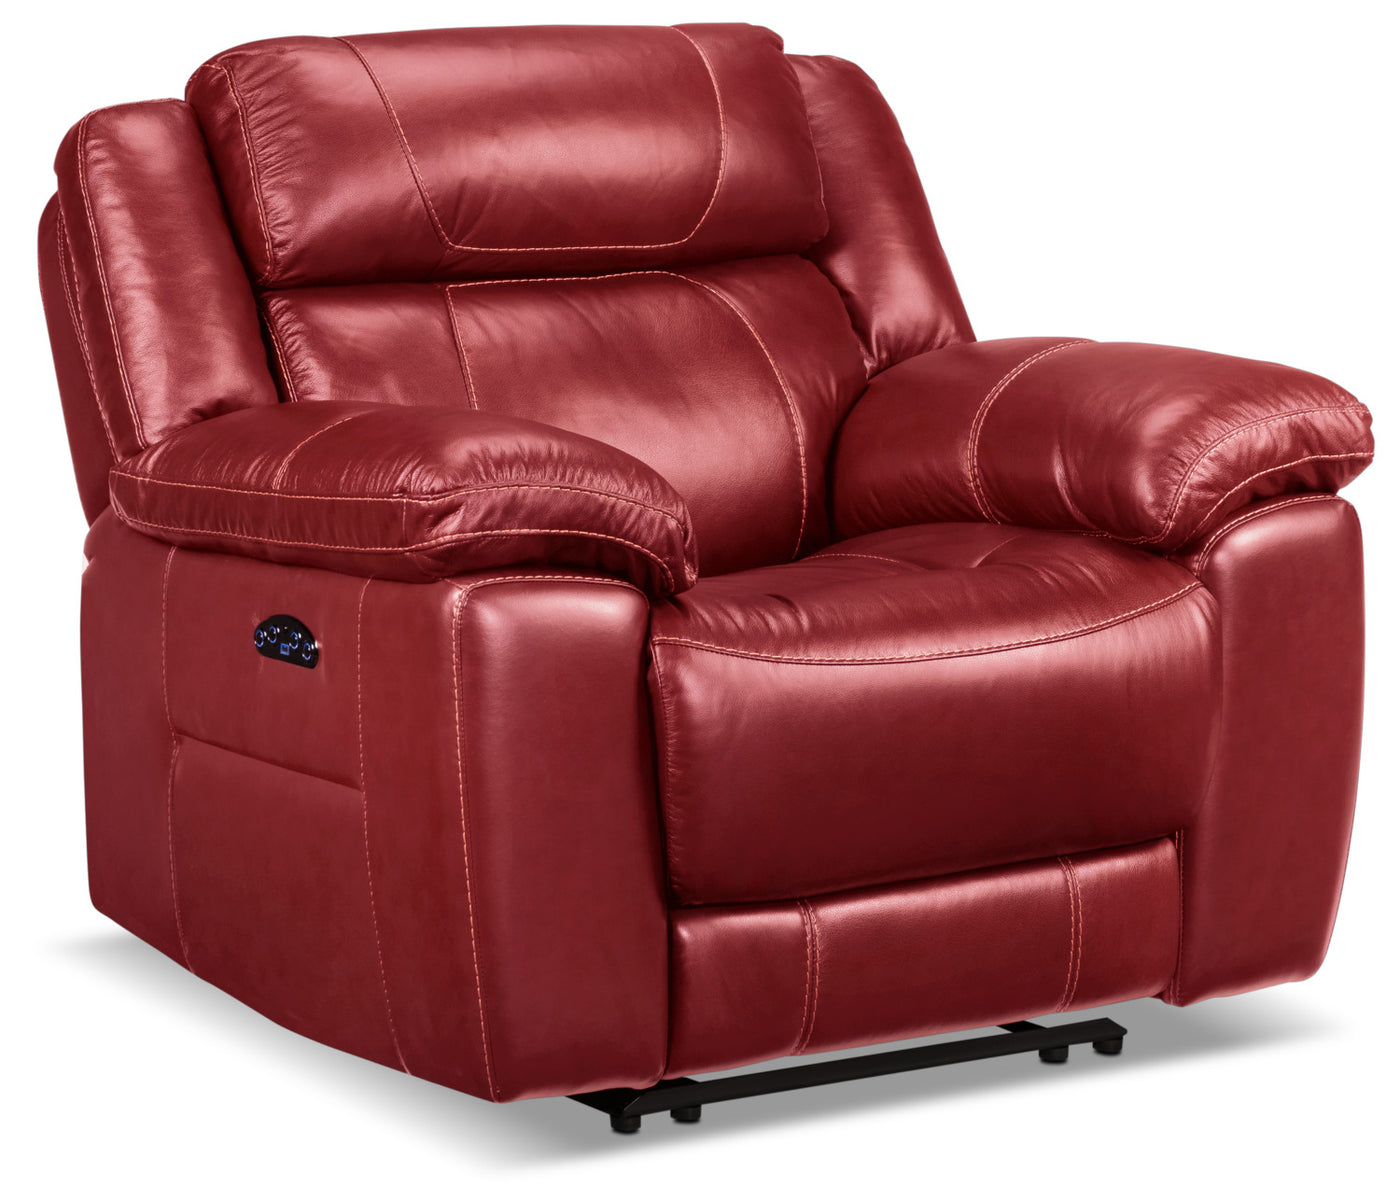 Solenn Power Reclining Sofa And Recliner Rouge